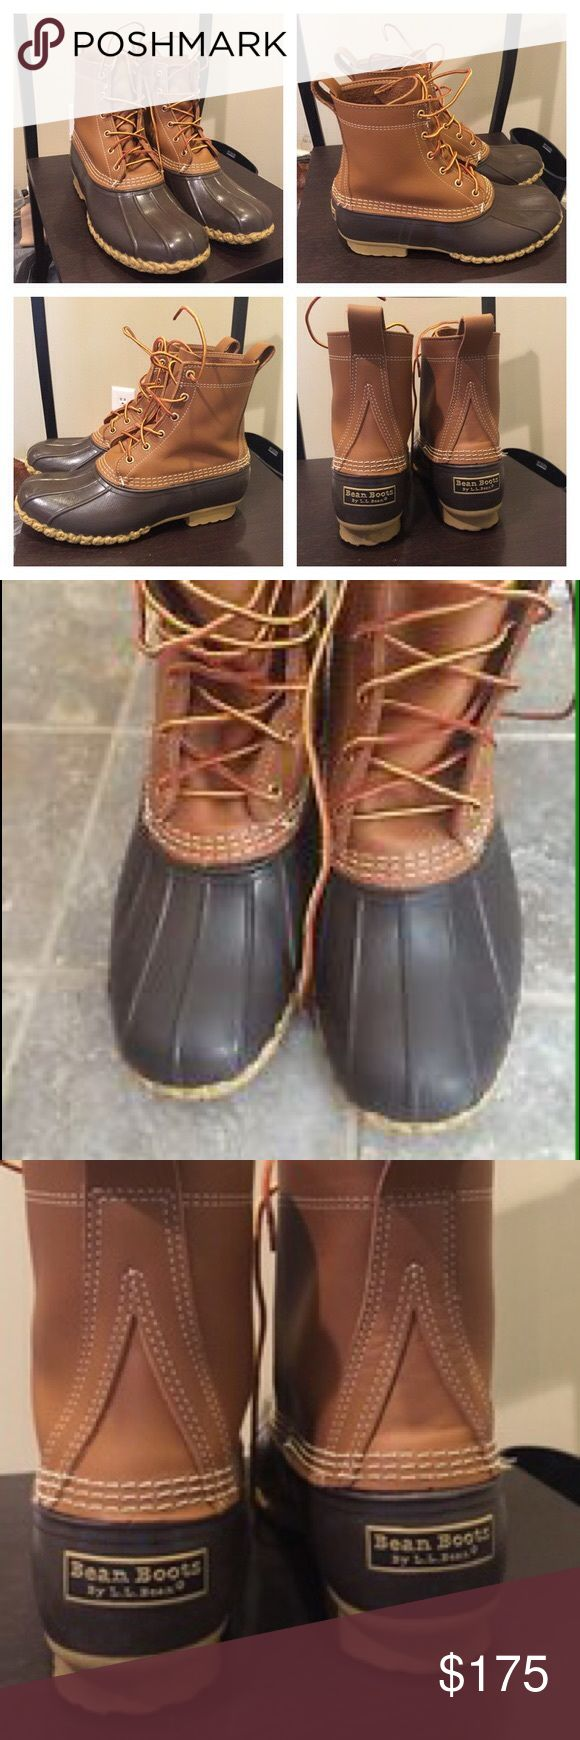 "LIKE NEW L.L. Bean 8"" Bean Boots Women's Size 8 LIKE NEW Authentic L.L. Bean 8"" Duck Boots Women's Size 8 Sold from a true mainer boughten at L.L. Bean Factory next door to me Size 8 fits women's 9 thanks for looking perfect boot for winter ! Genuine leather L.L. Bean Shoes Winter & Rain Boots"